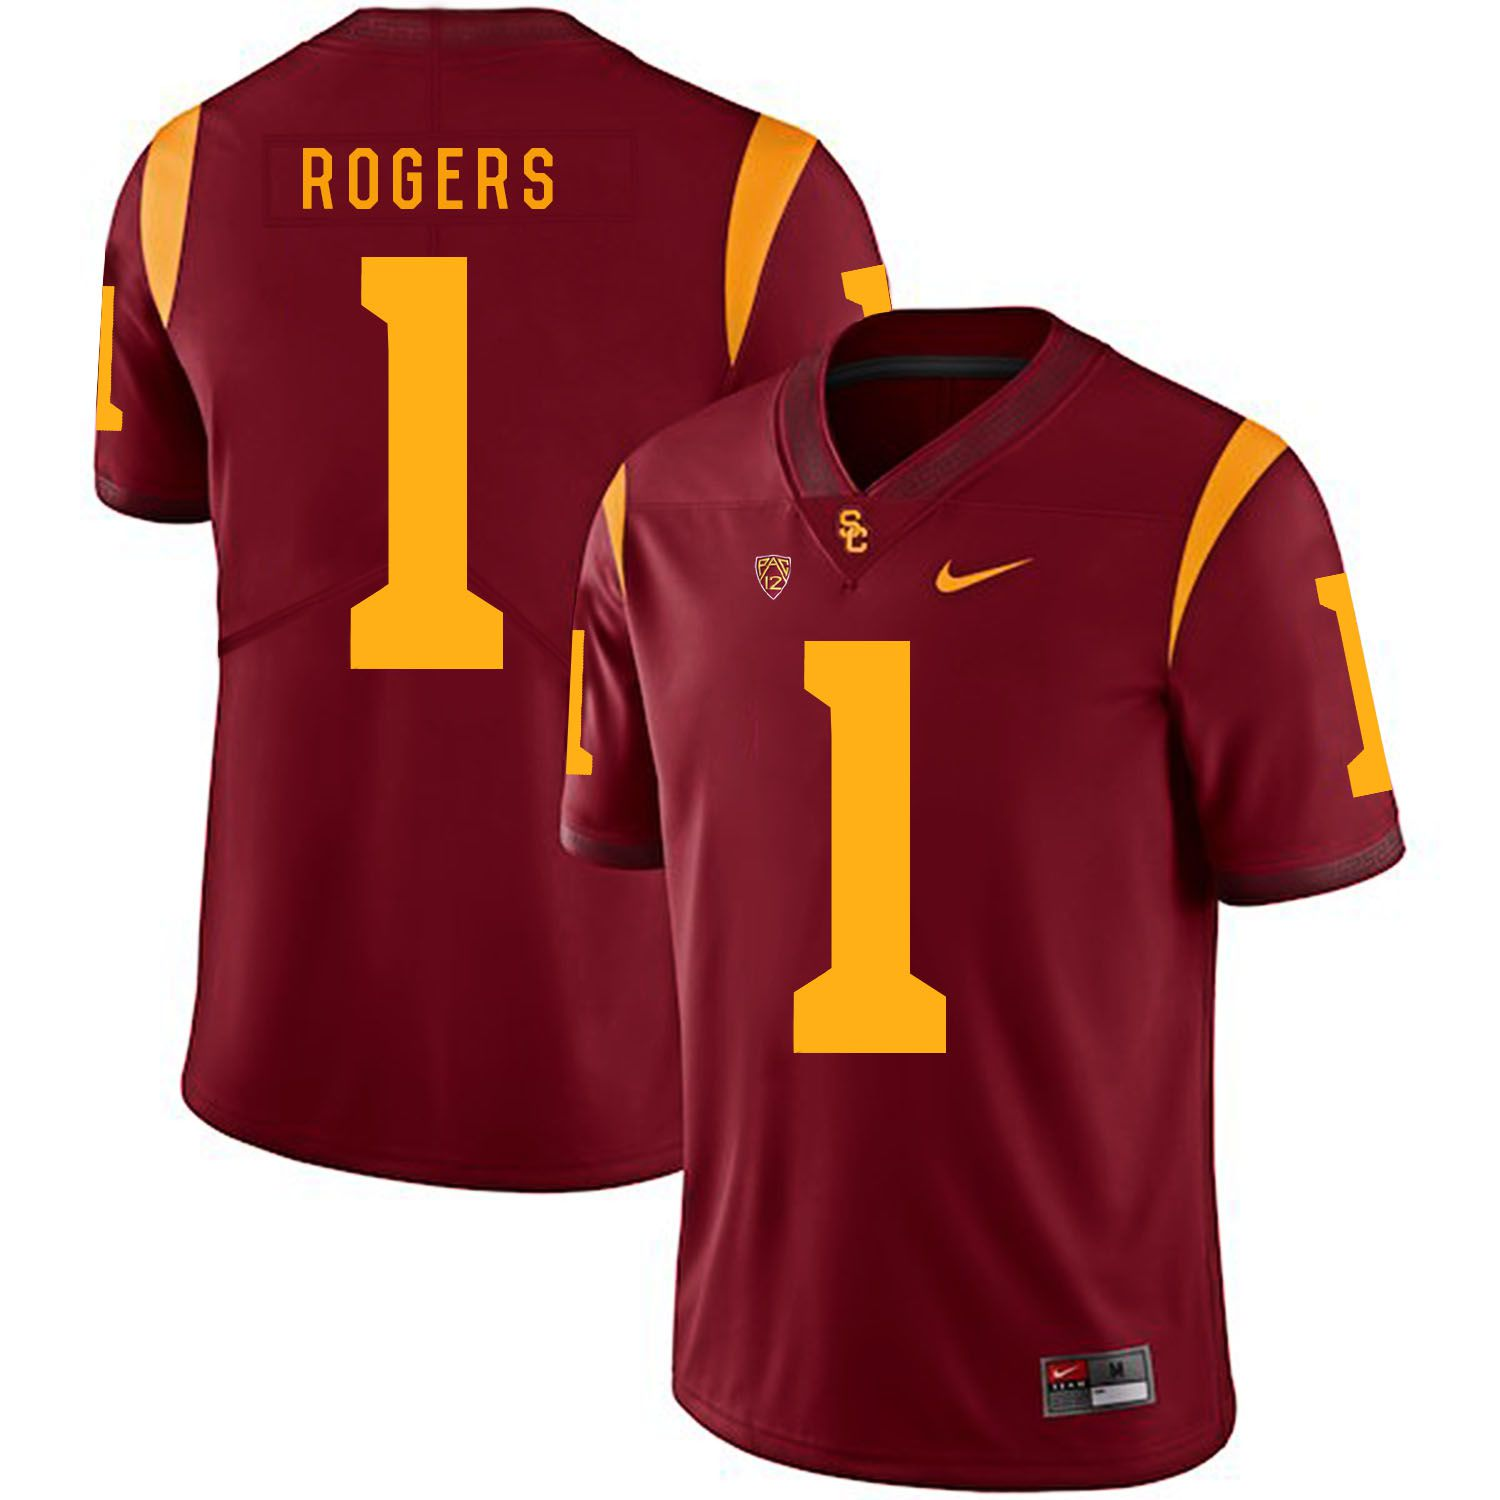 Men USC Trojans 1 Rogers Red Customized NCAA Jerseys